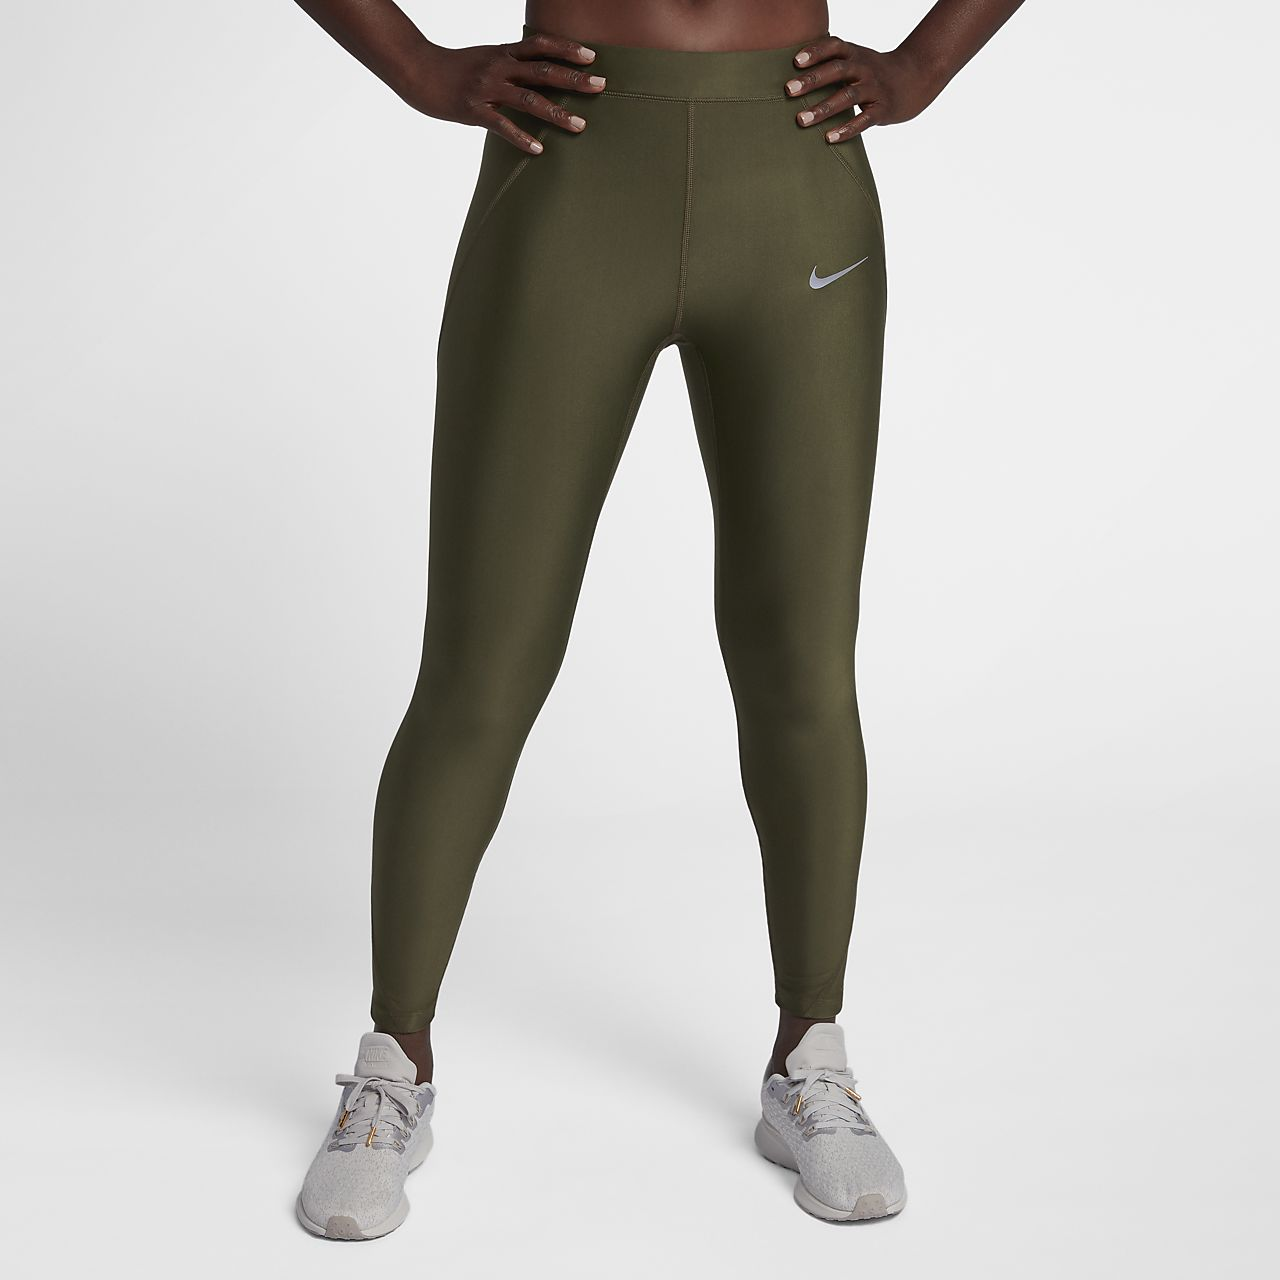 Nike Speed Women's Mid-Rise 7/8 Running Tights